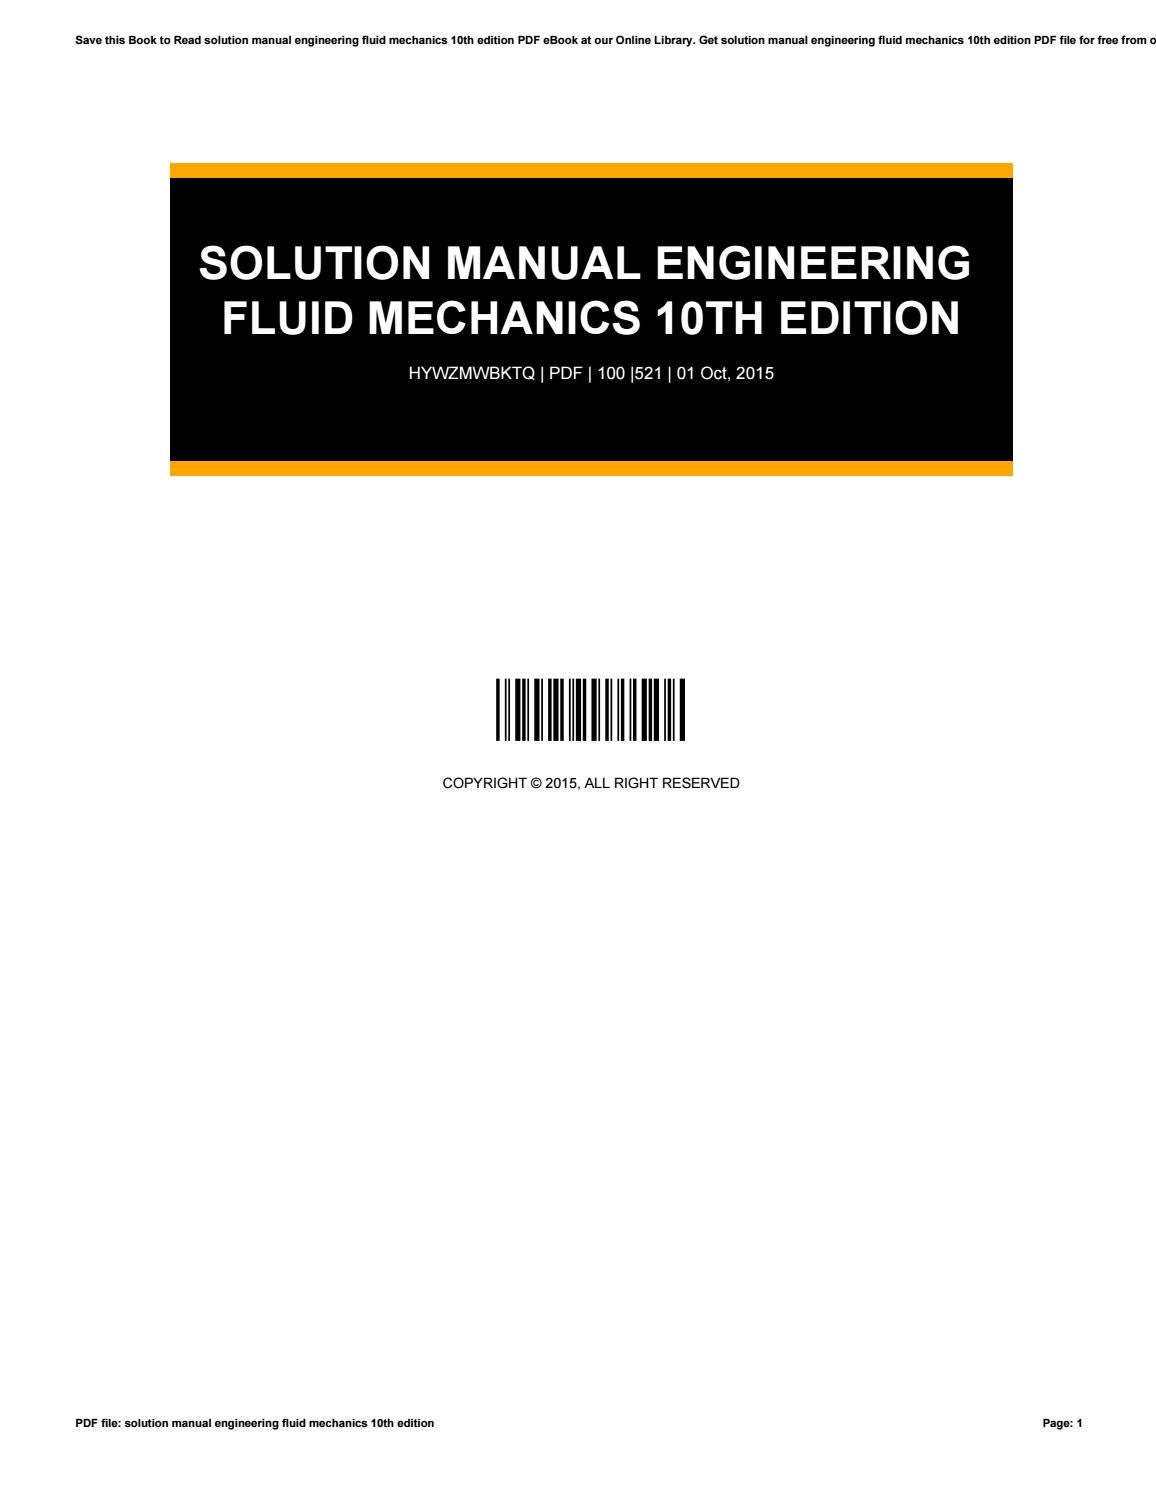 Solution manual engineering fluid mechanics 10th edition by  ChristopherMackay1411 - issuu